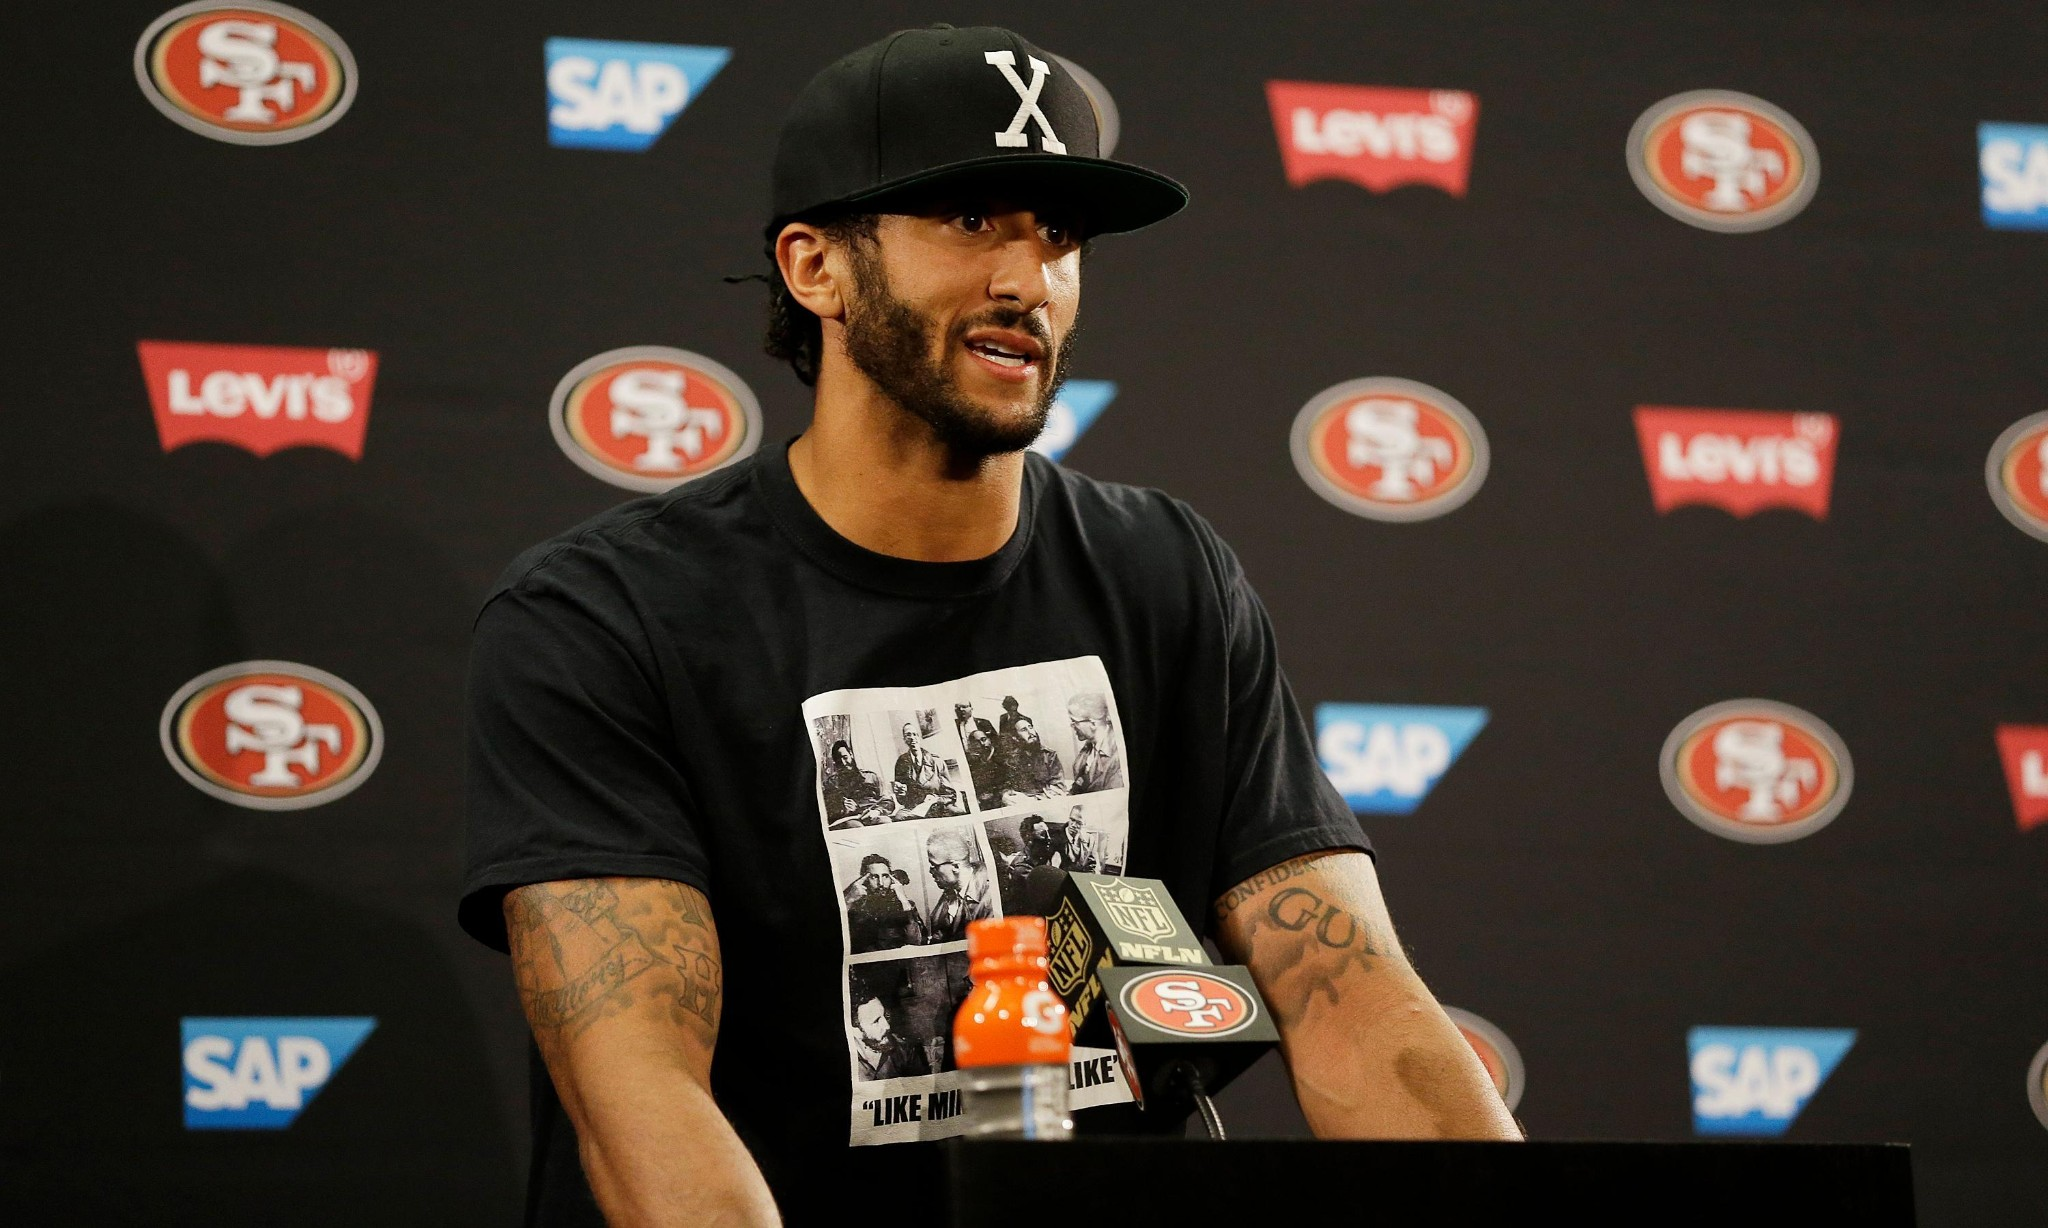 Colin Kaepernick's anthem protest is all the more brave due to his career slump